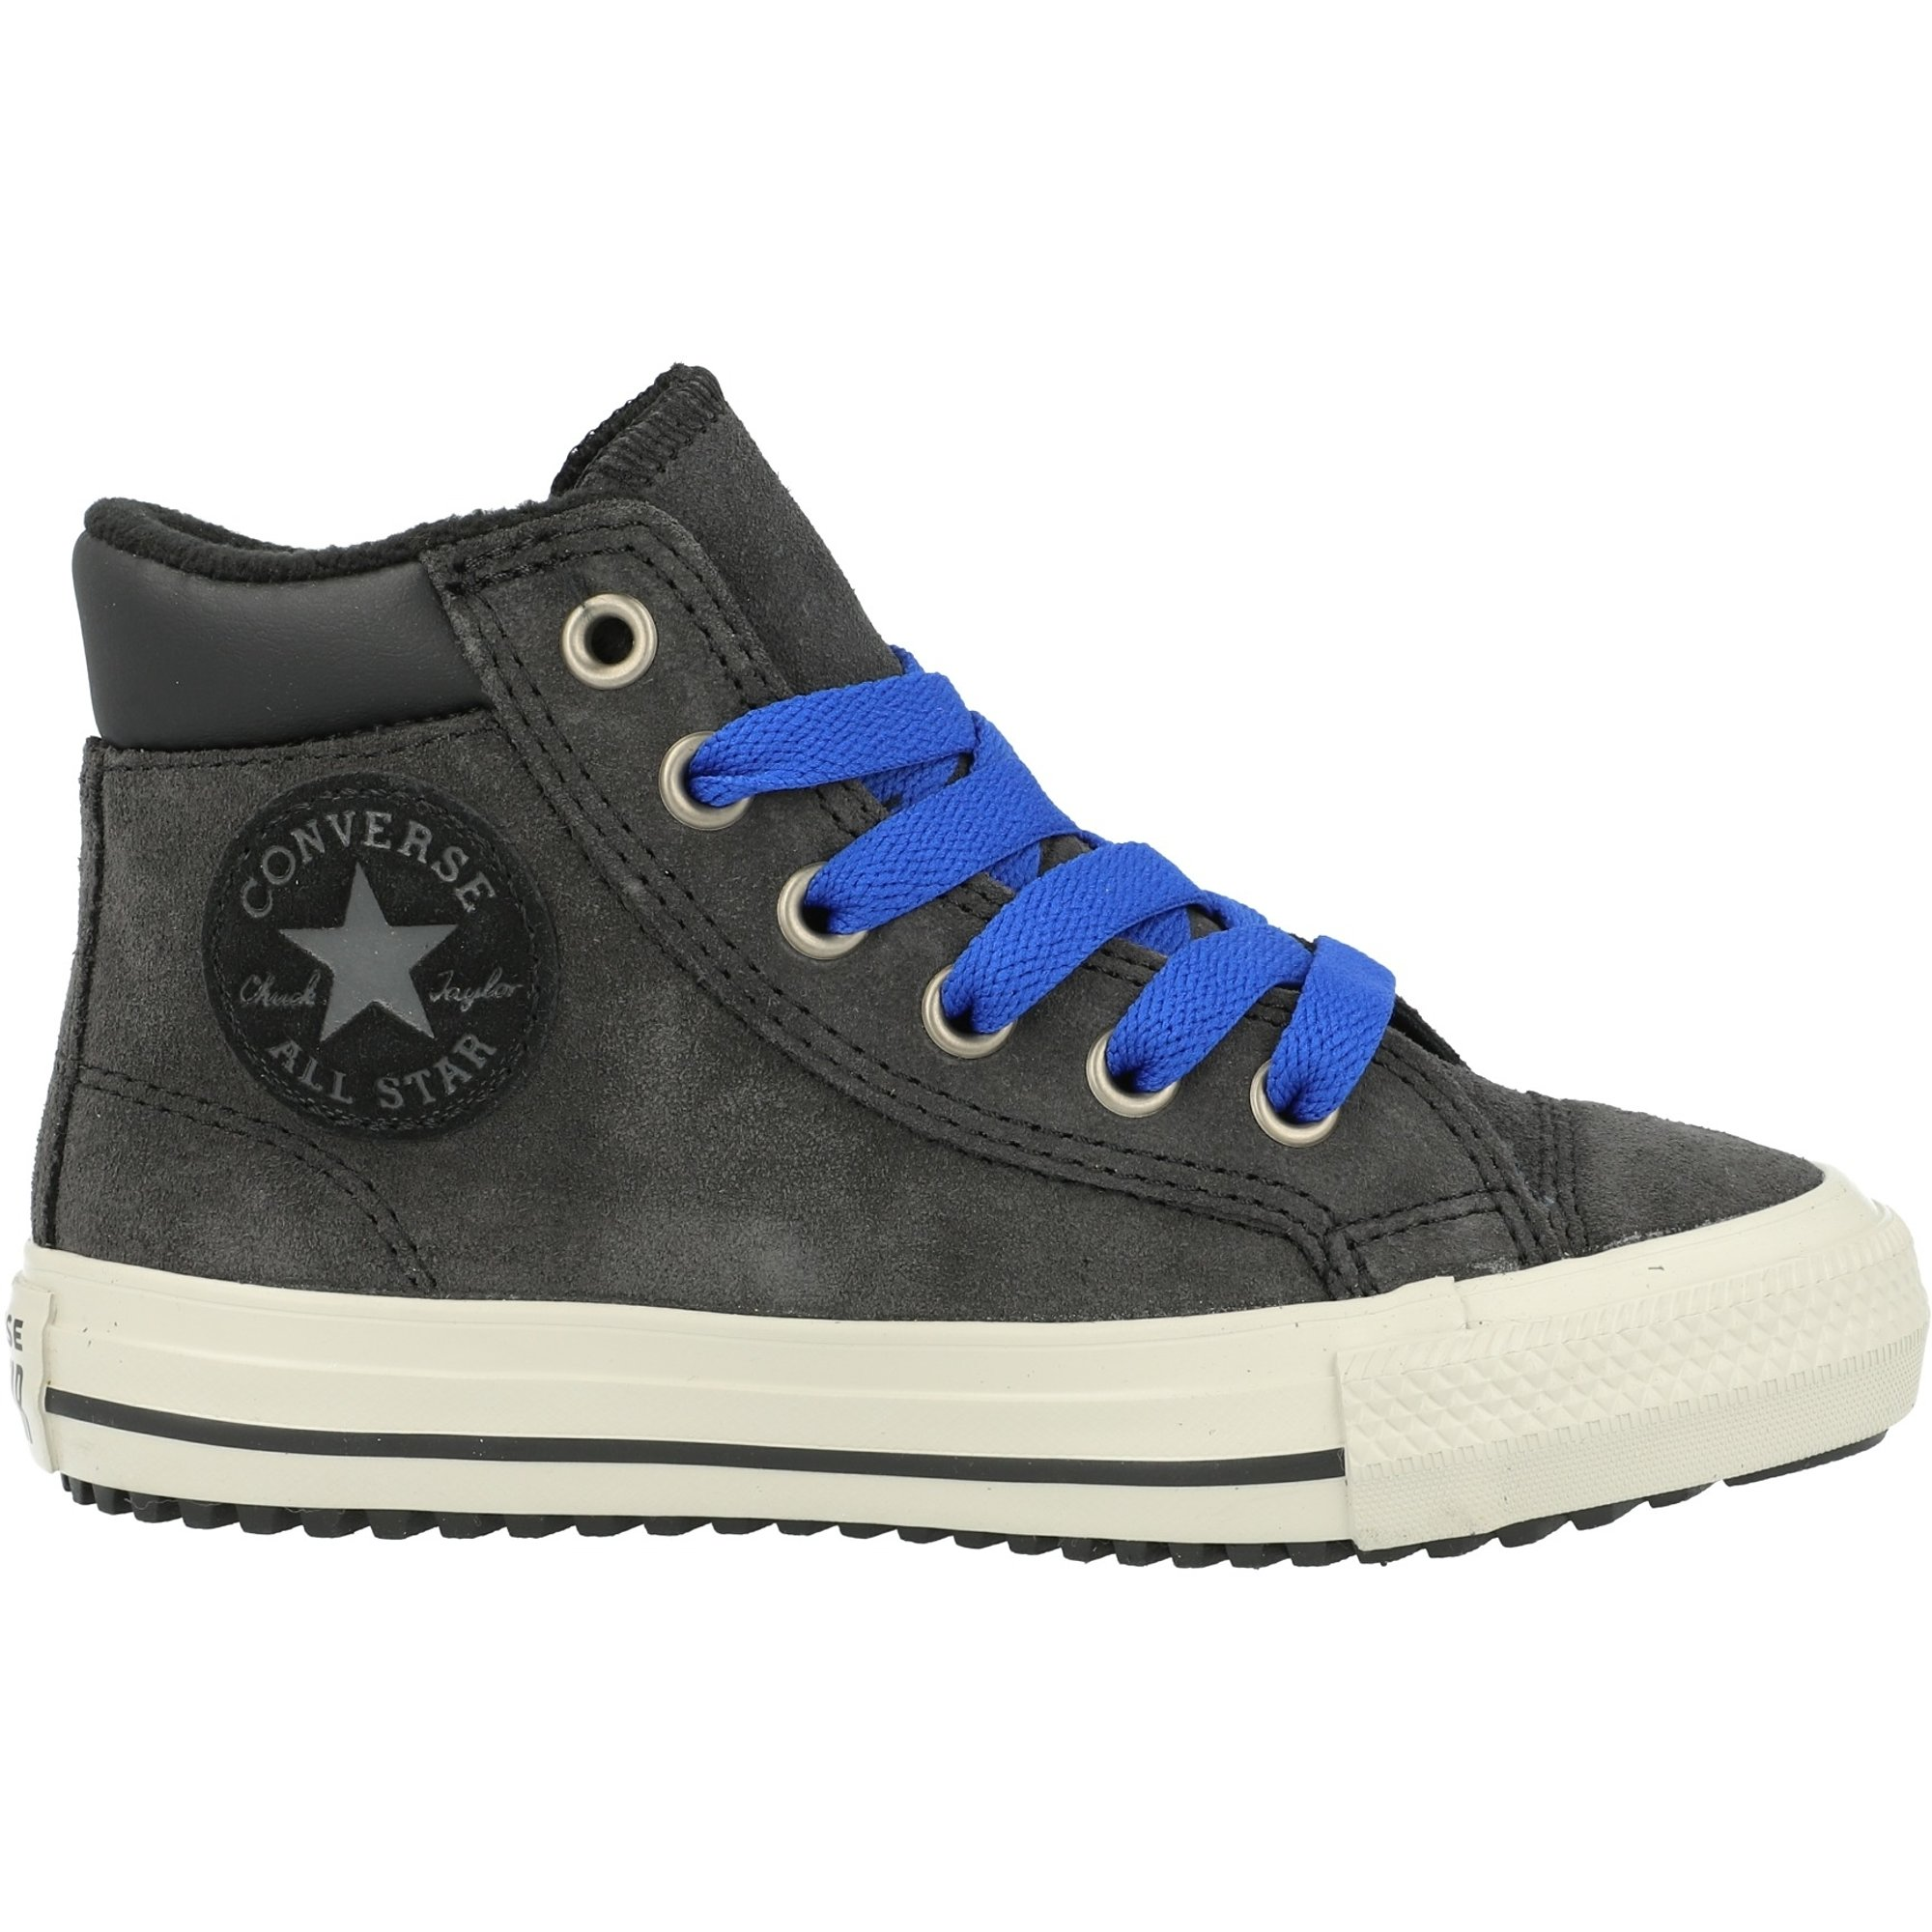 Converse Chuck Taylor All Star PC Boot Boots On Mars Hi Almost Black Suede Junior